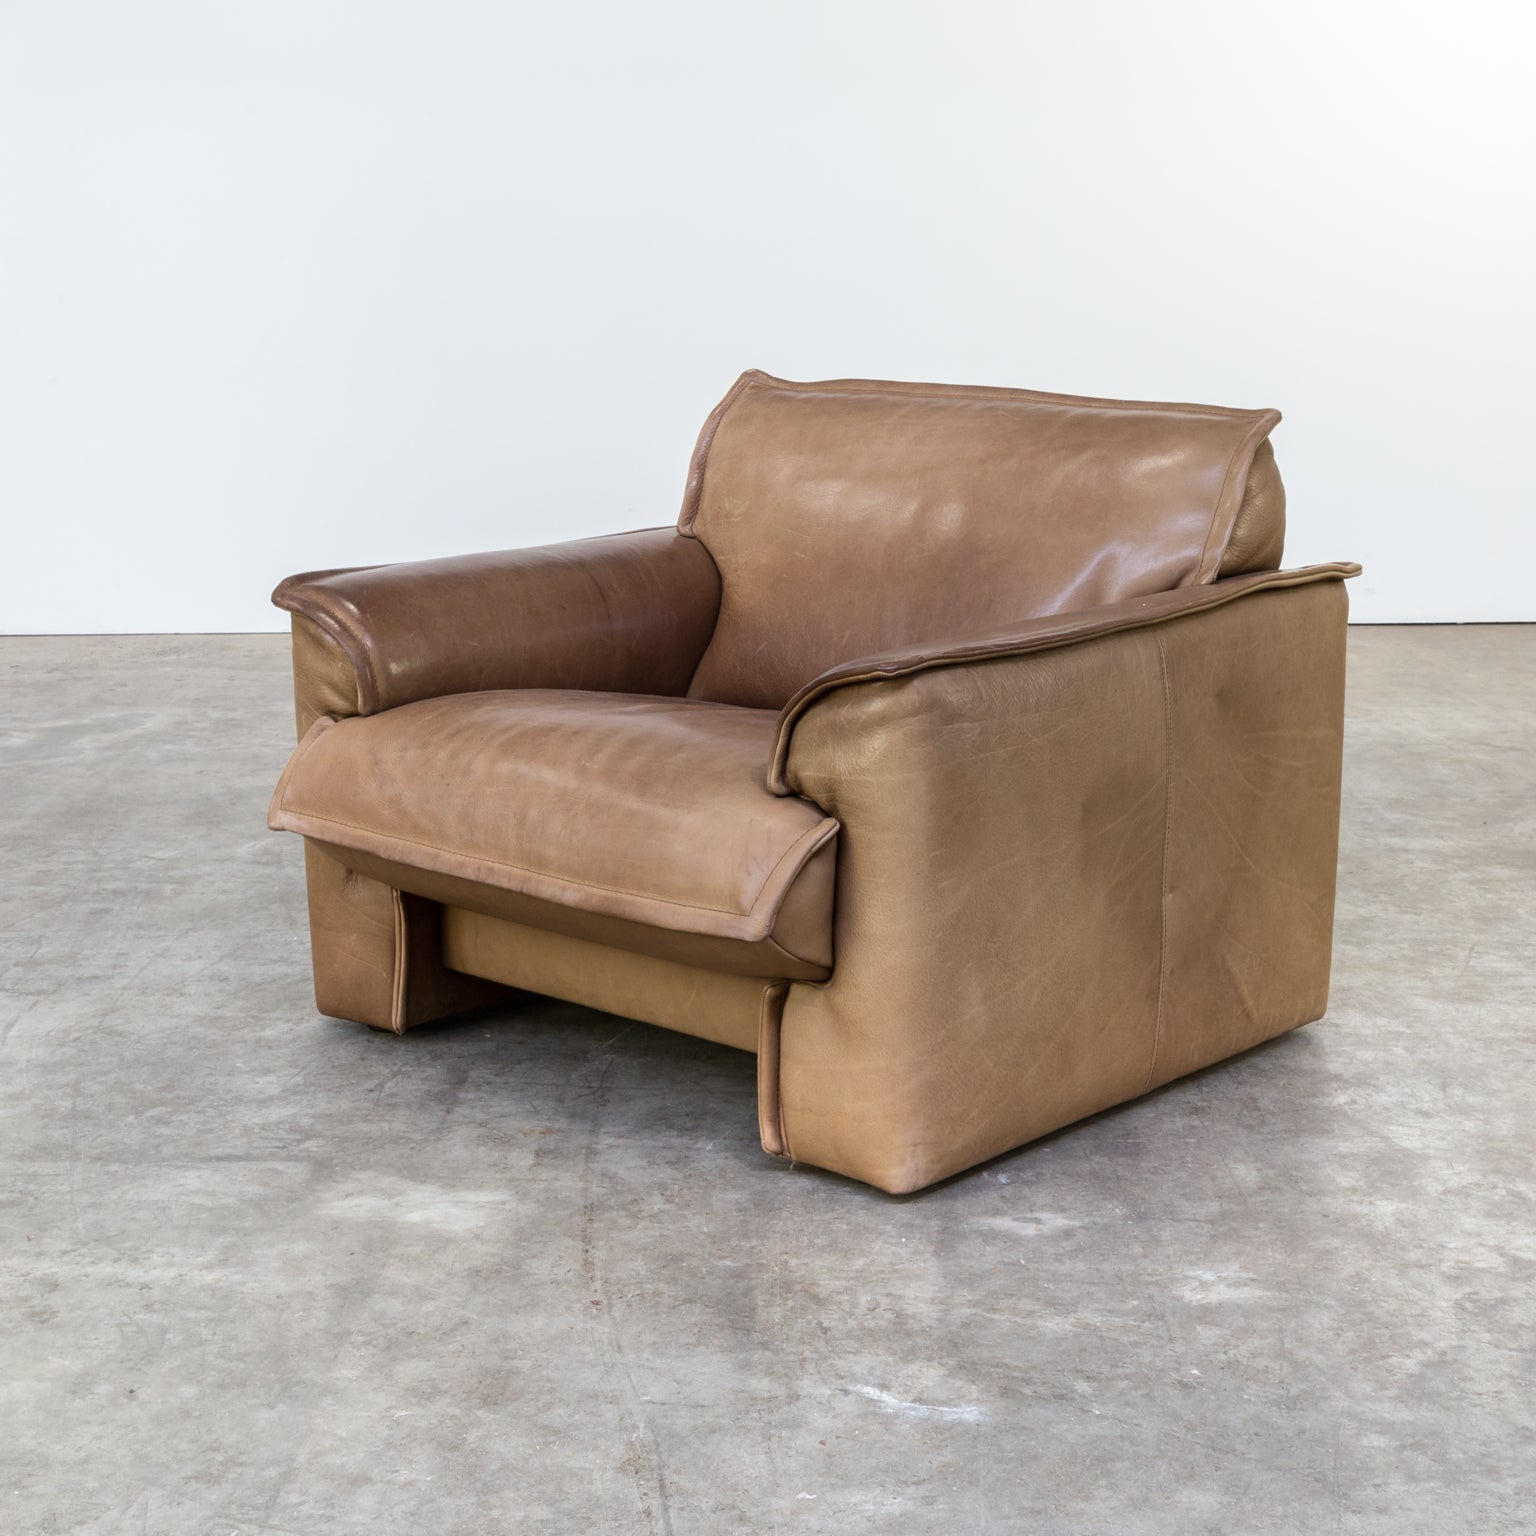 Design Fauteuil Leolux.1970s Leolux High Quality Seating Group Sofa Fauteuil For Sale At